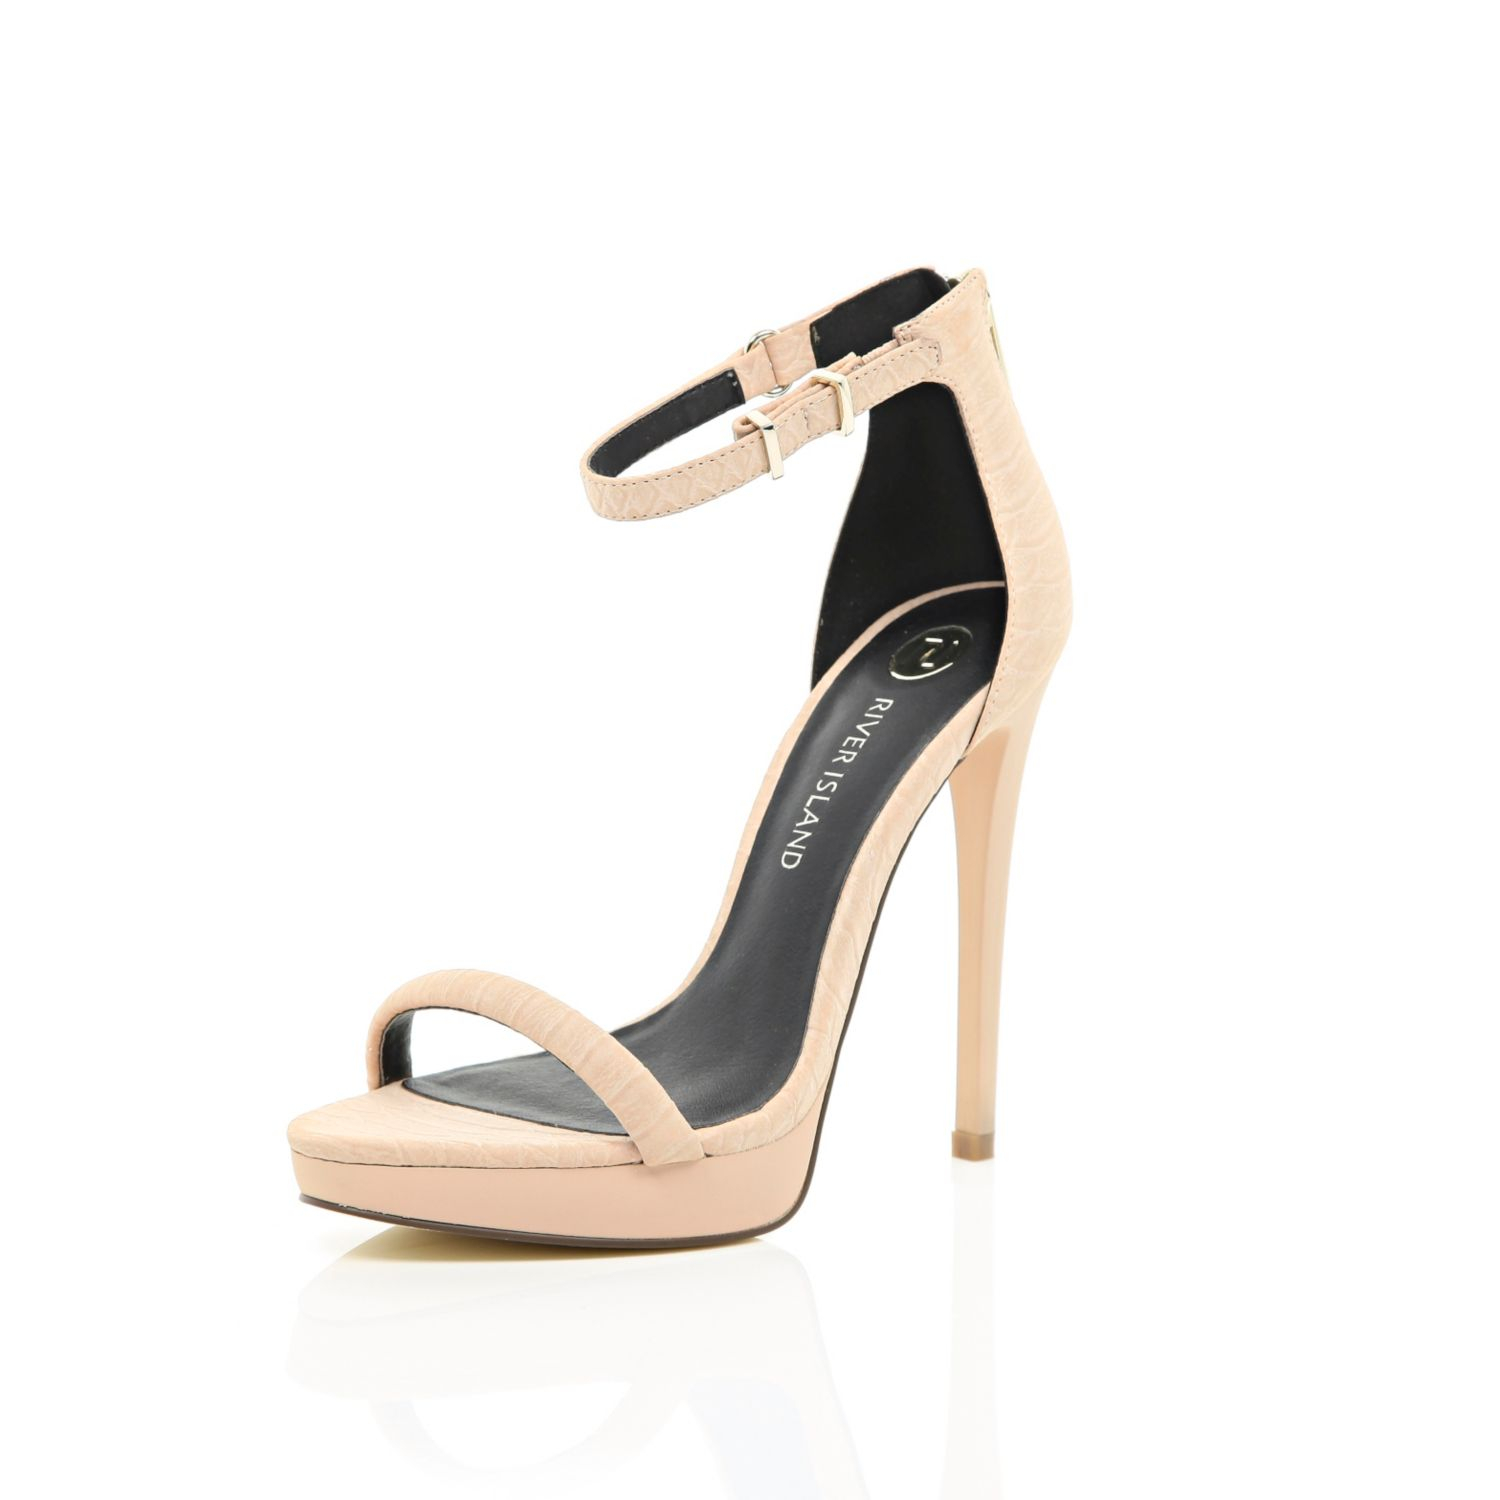 River Island Womens Nude barely there platform sandals TIrvad